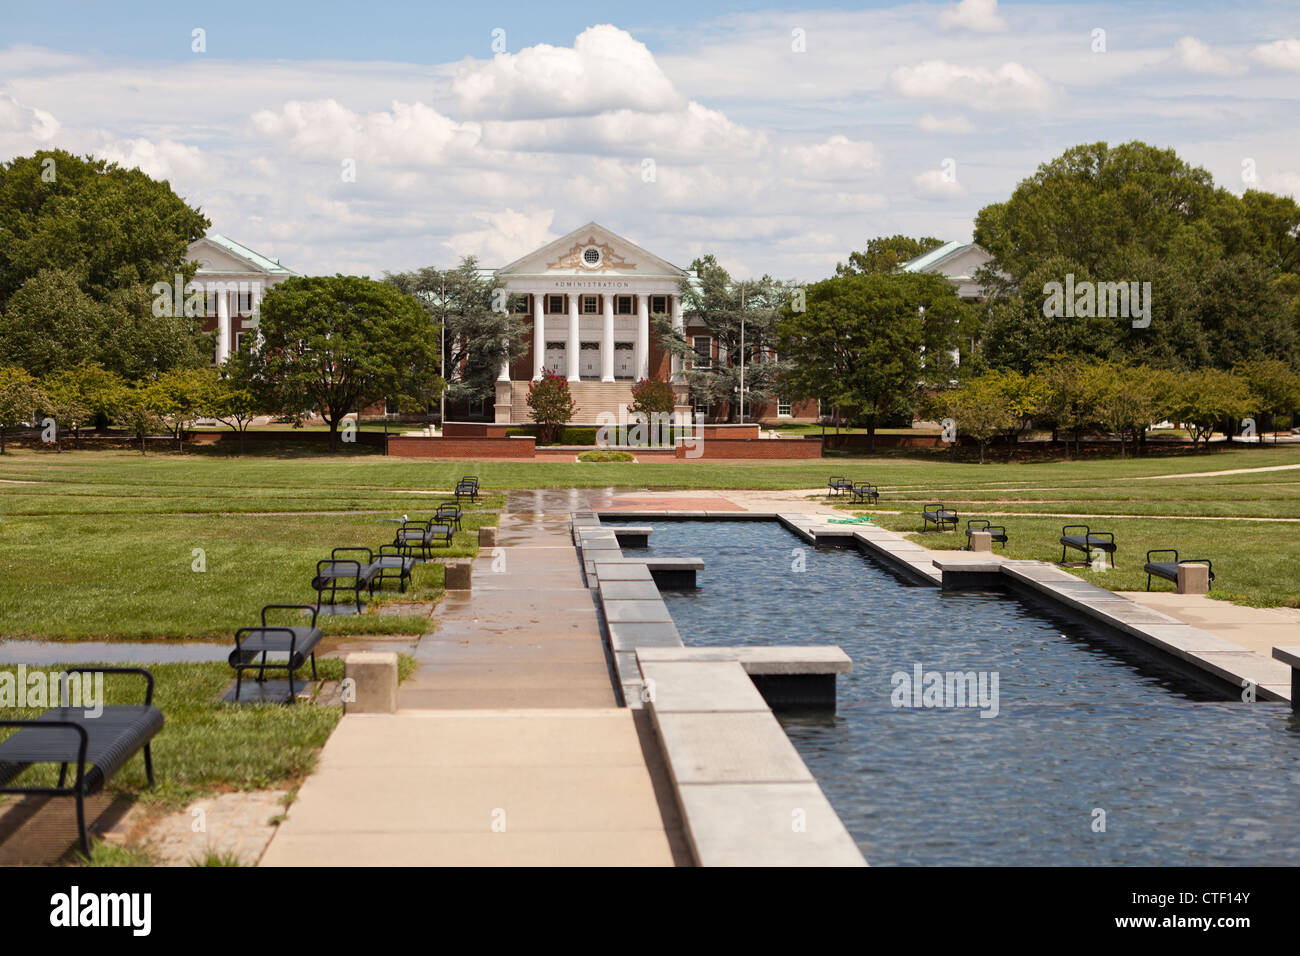 University of Maryland, McKeldin Mall Fountain - Stock Image